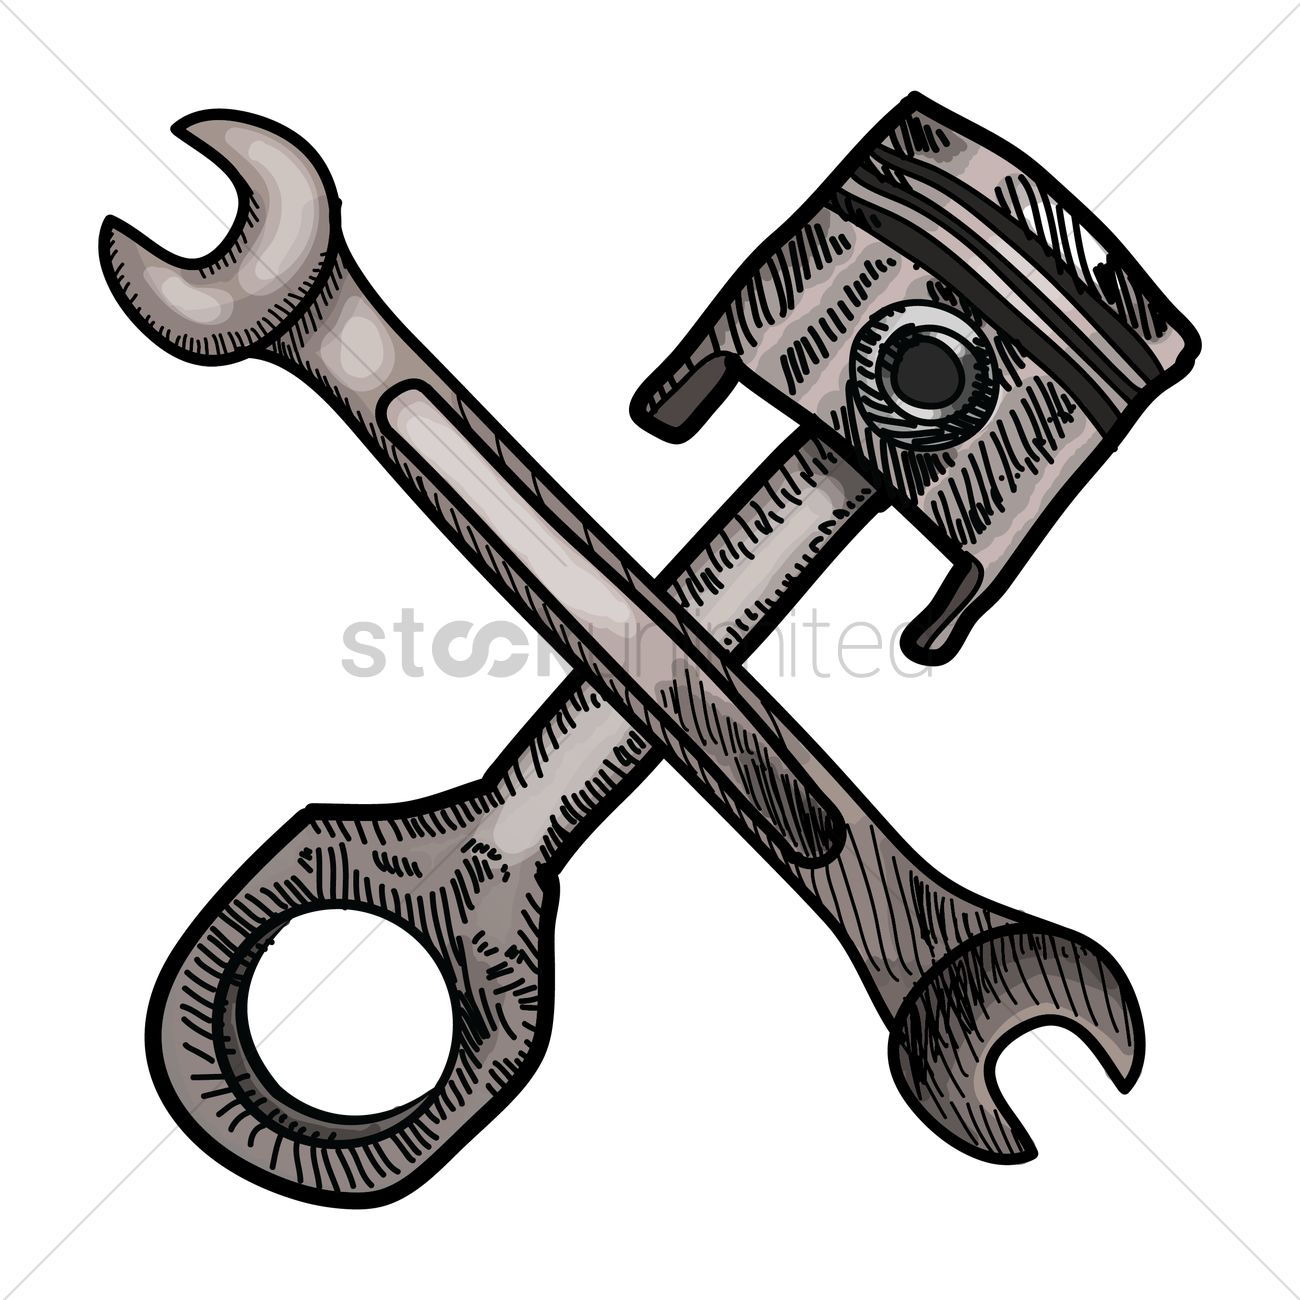 piston and spanner vector image 1459962 stockunlimited. Black Bedroom Furniture Sets. Home Design Ideas